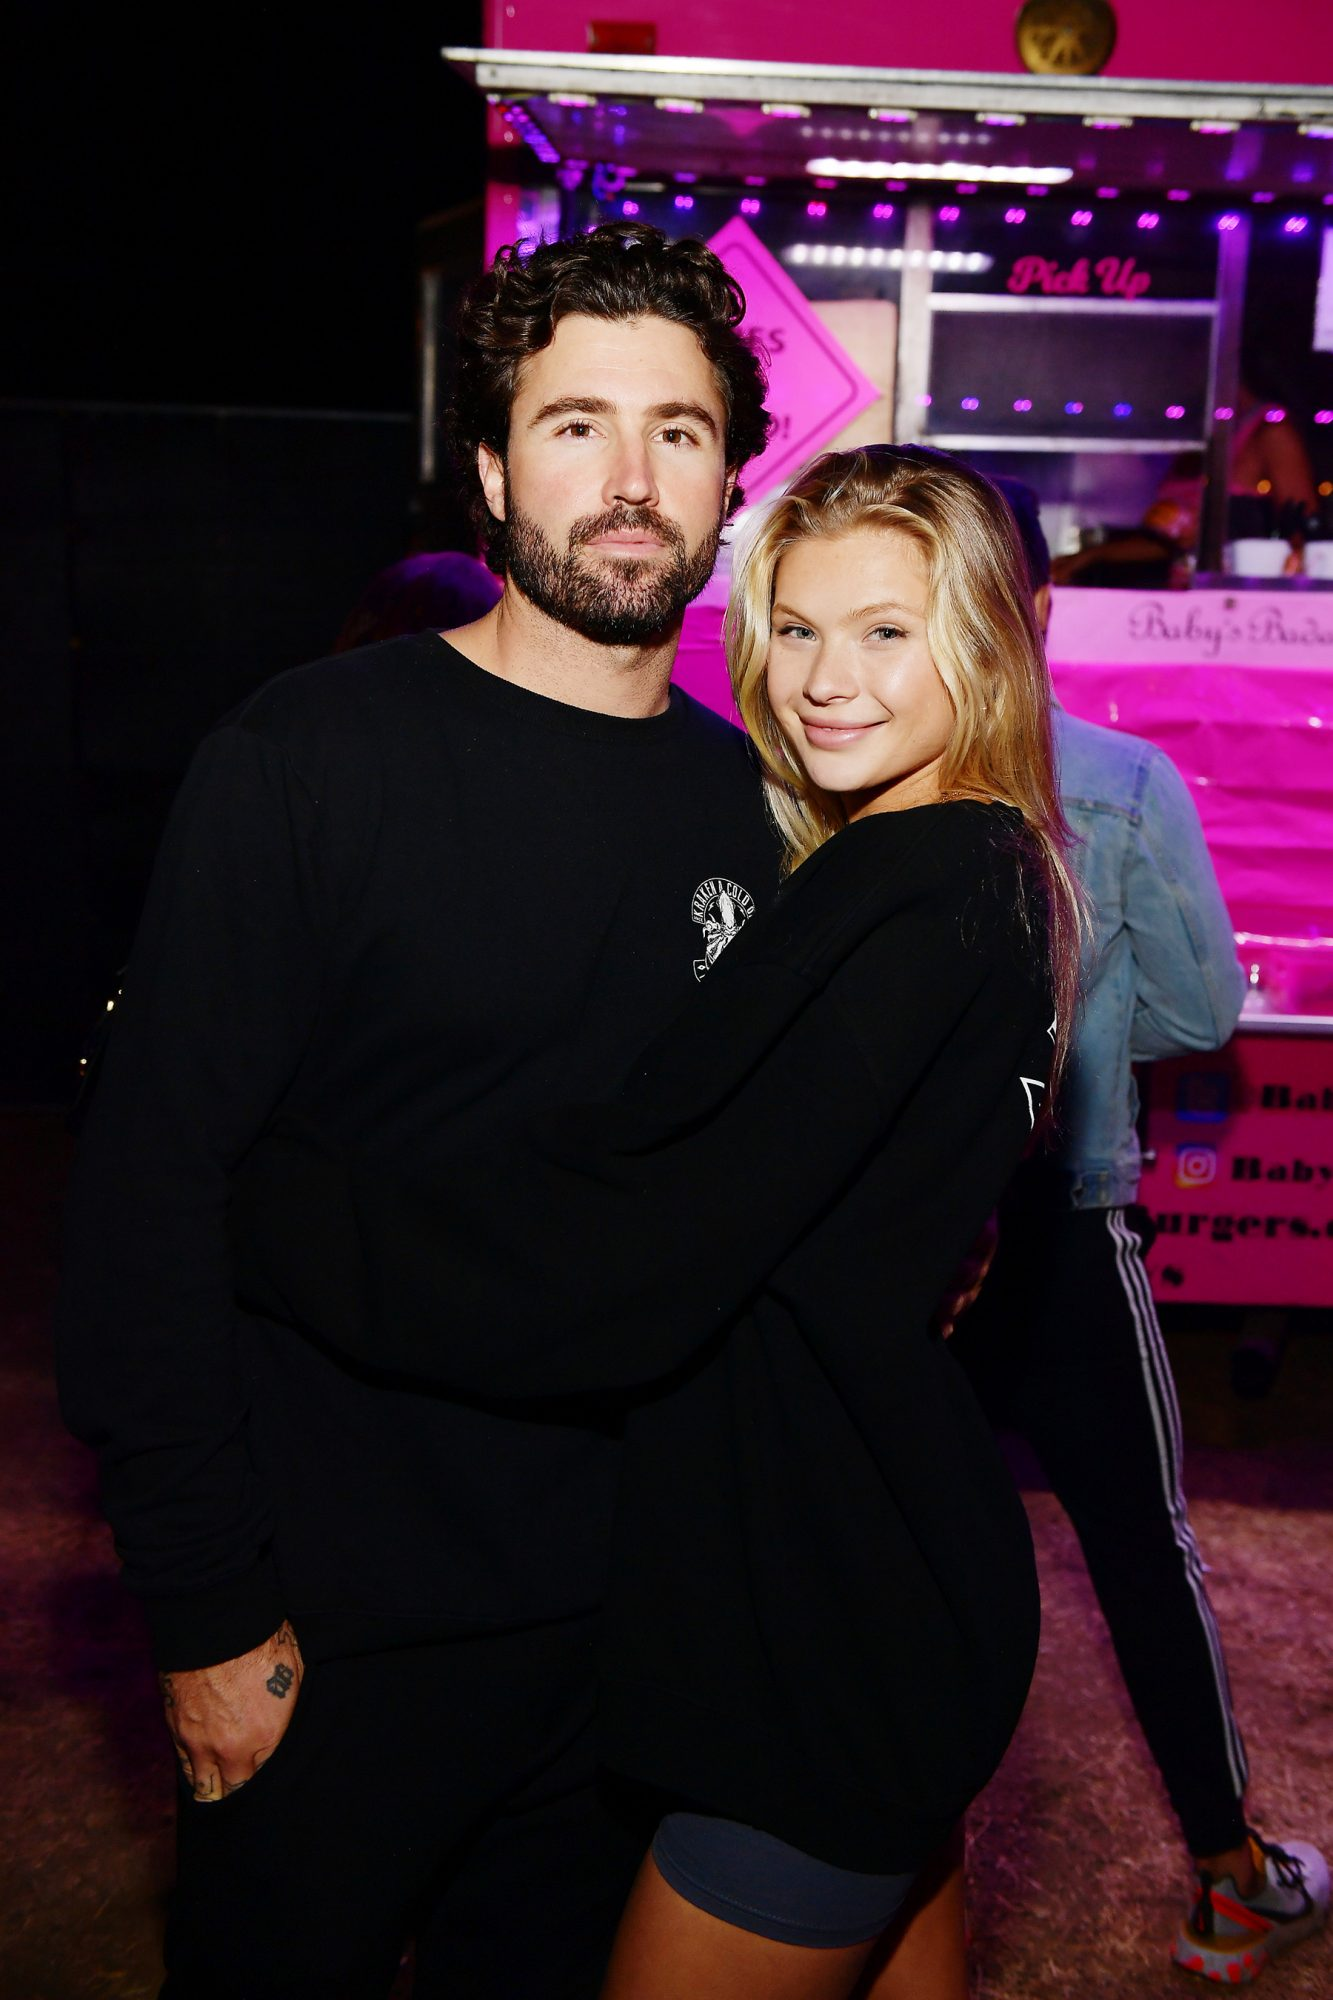 Brody Jenner and Josie Canseco